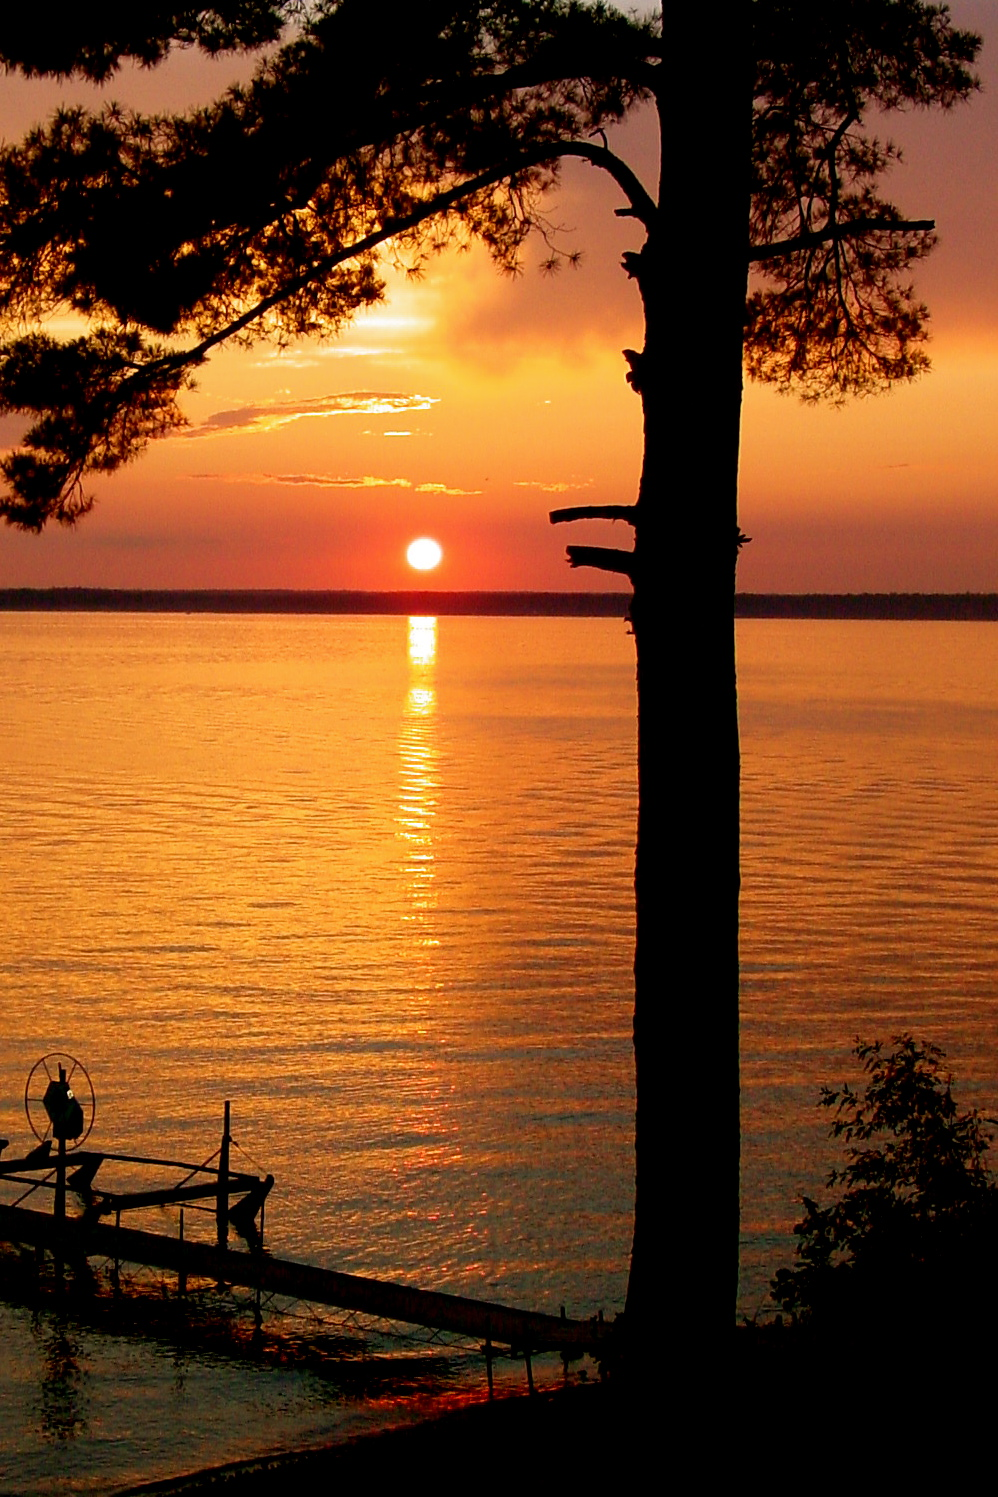 cass lake personals Kansas city vacation rentals - craigslist cl  (lake of the ozark) pic map hide this posting restore restore this posting  favorite.